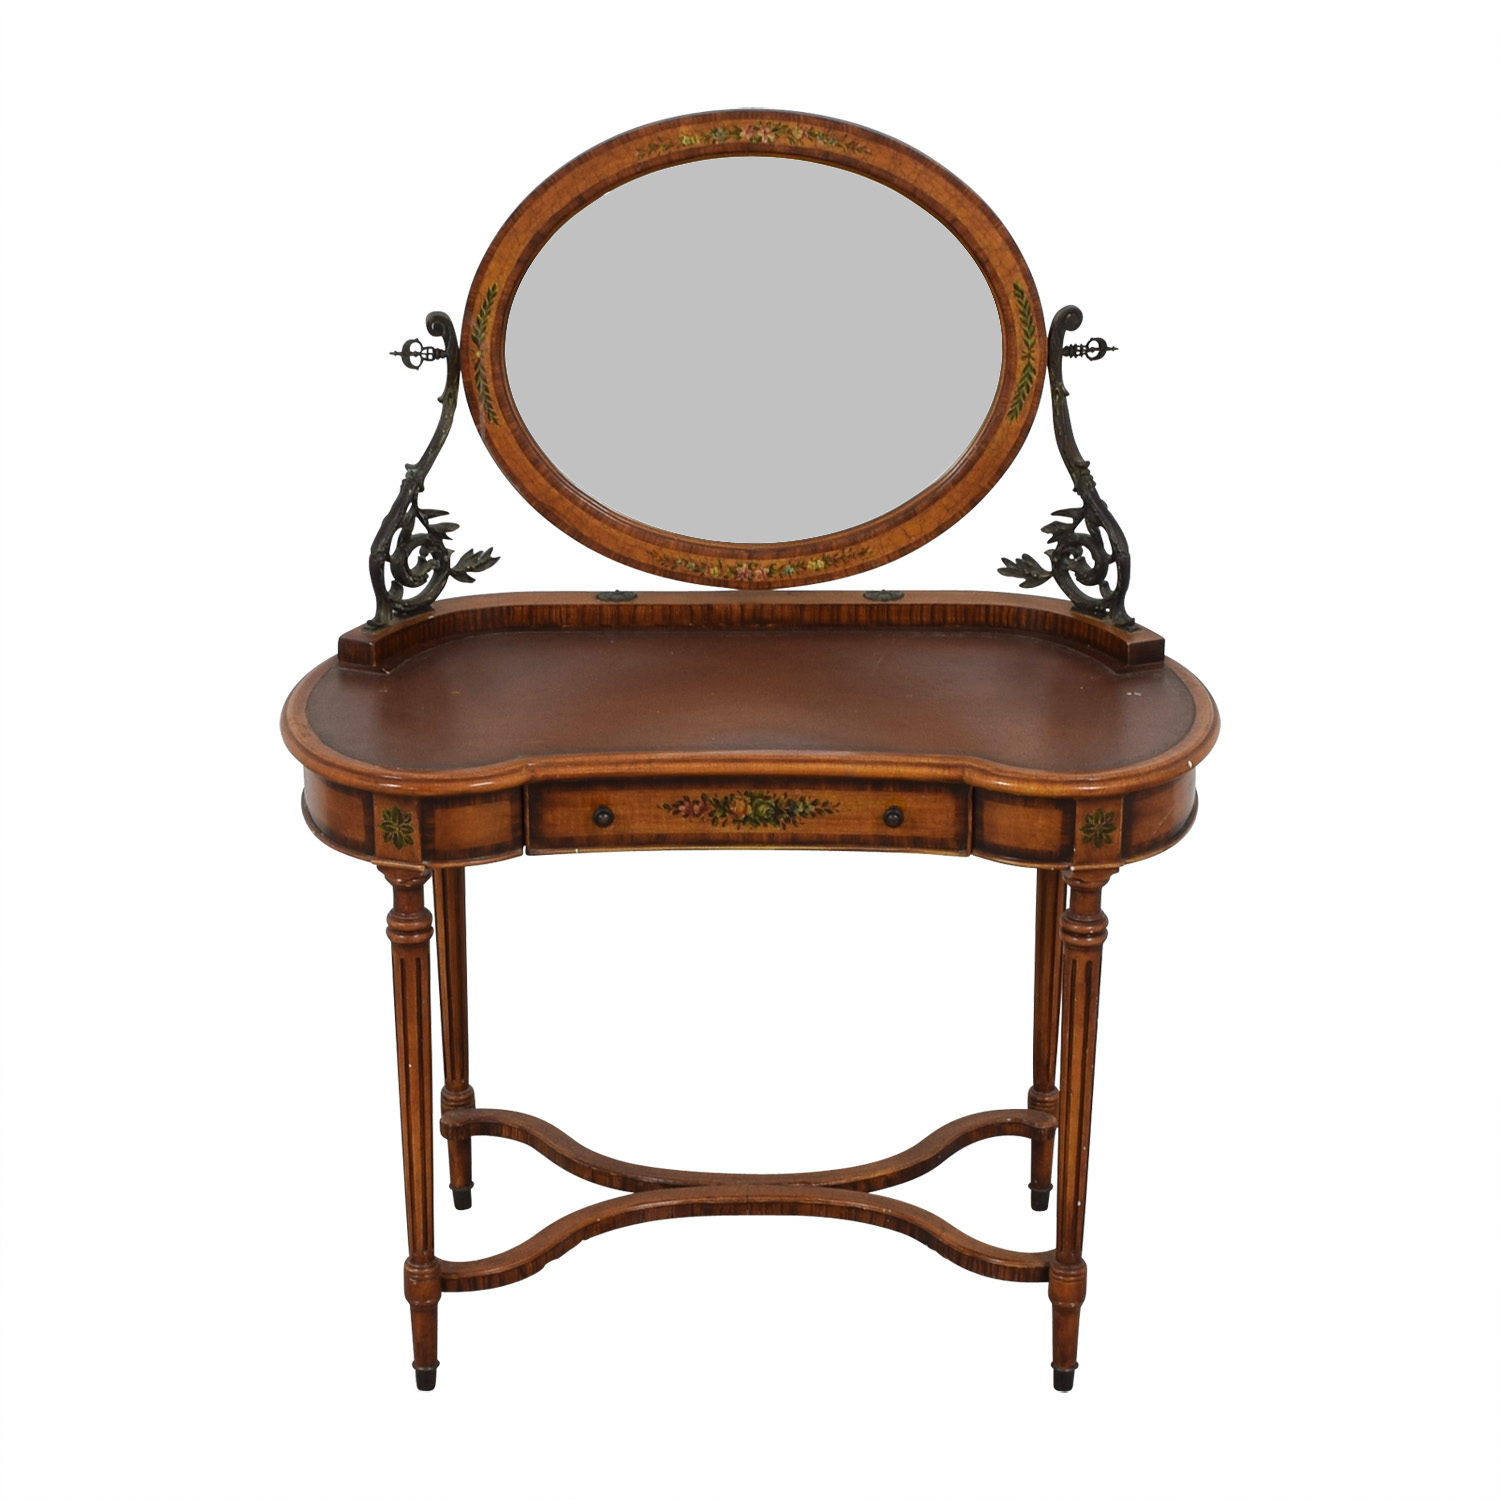 shop ABC Carpet & Home Antique Vanity with Mirror ABC Carpet & Home